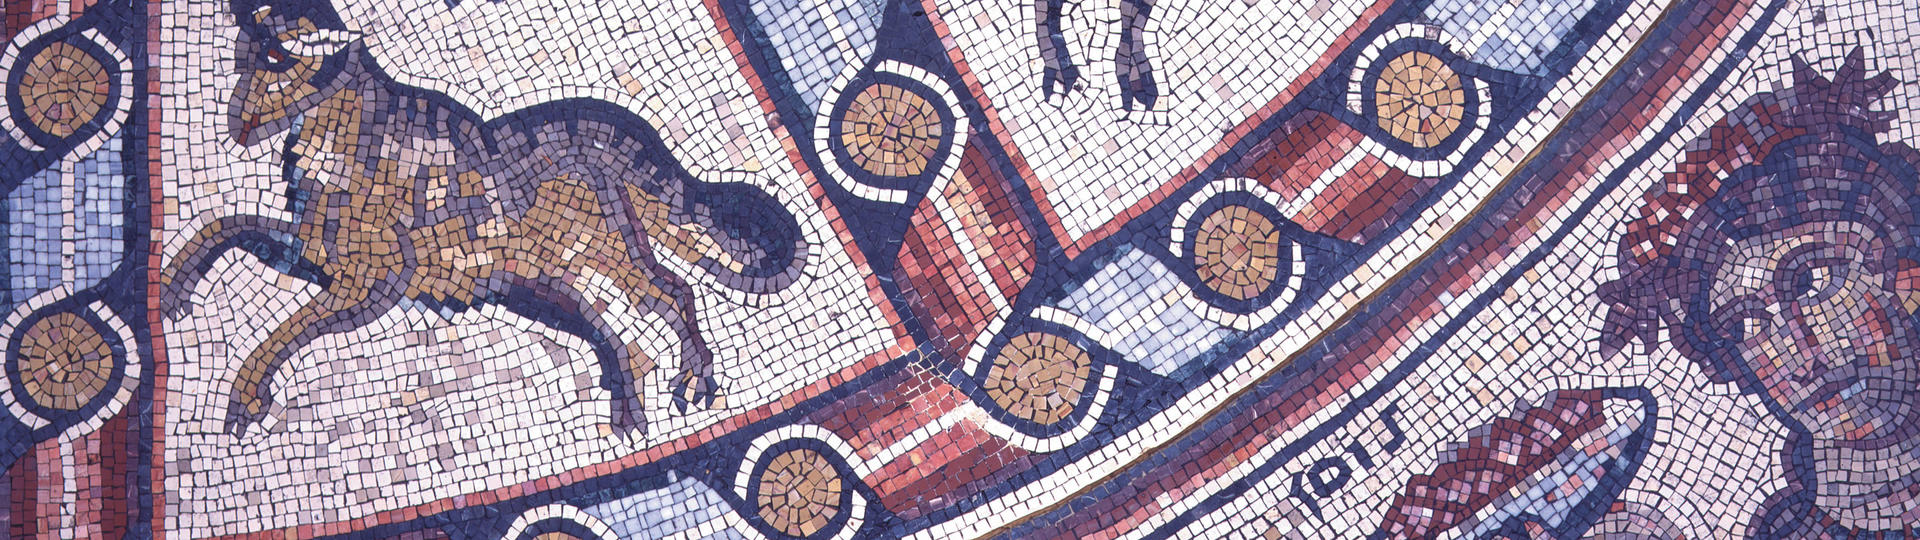 Mosaic floor replica showing bull and man holding a plate